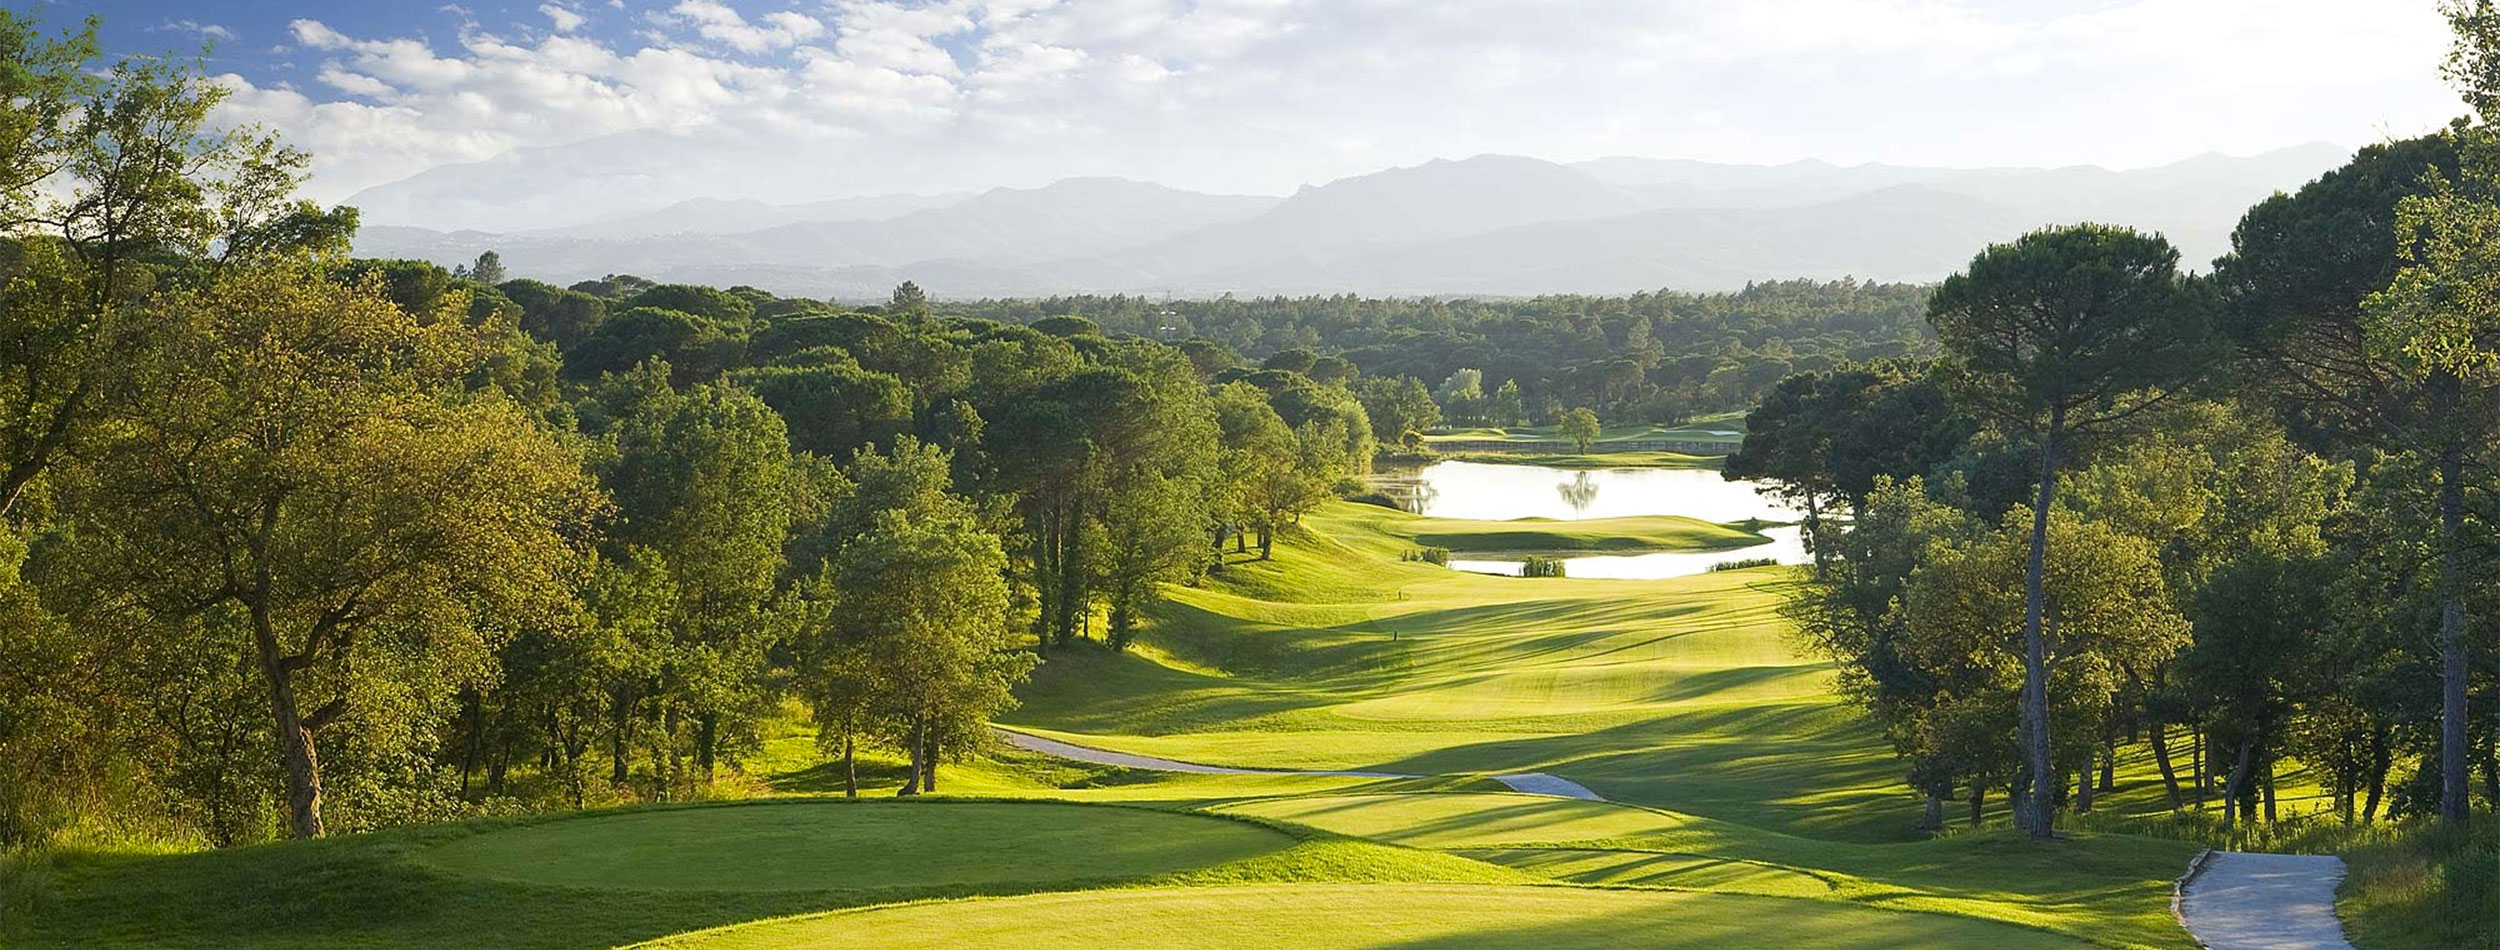 PGA Catalunya Resort Fantastic Frank fairway golf